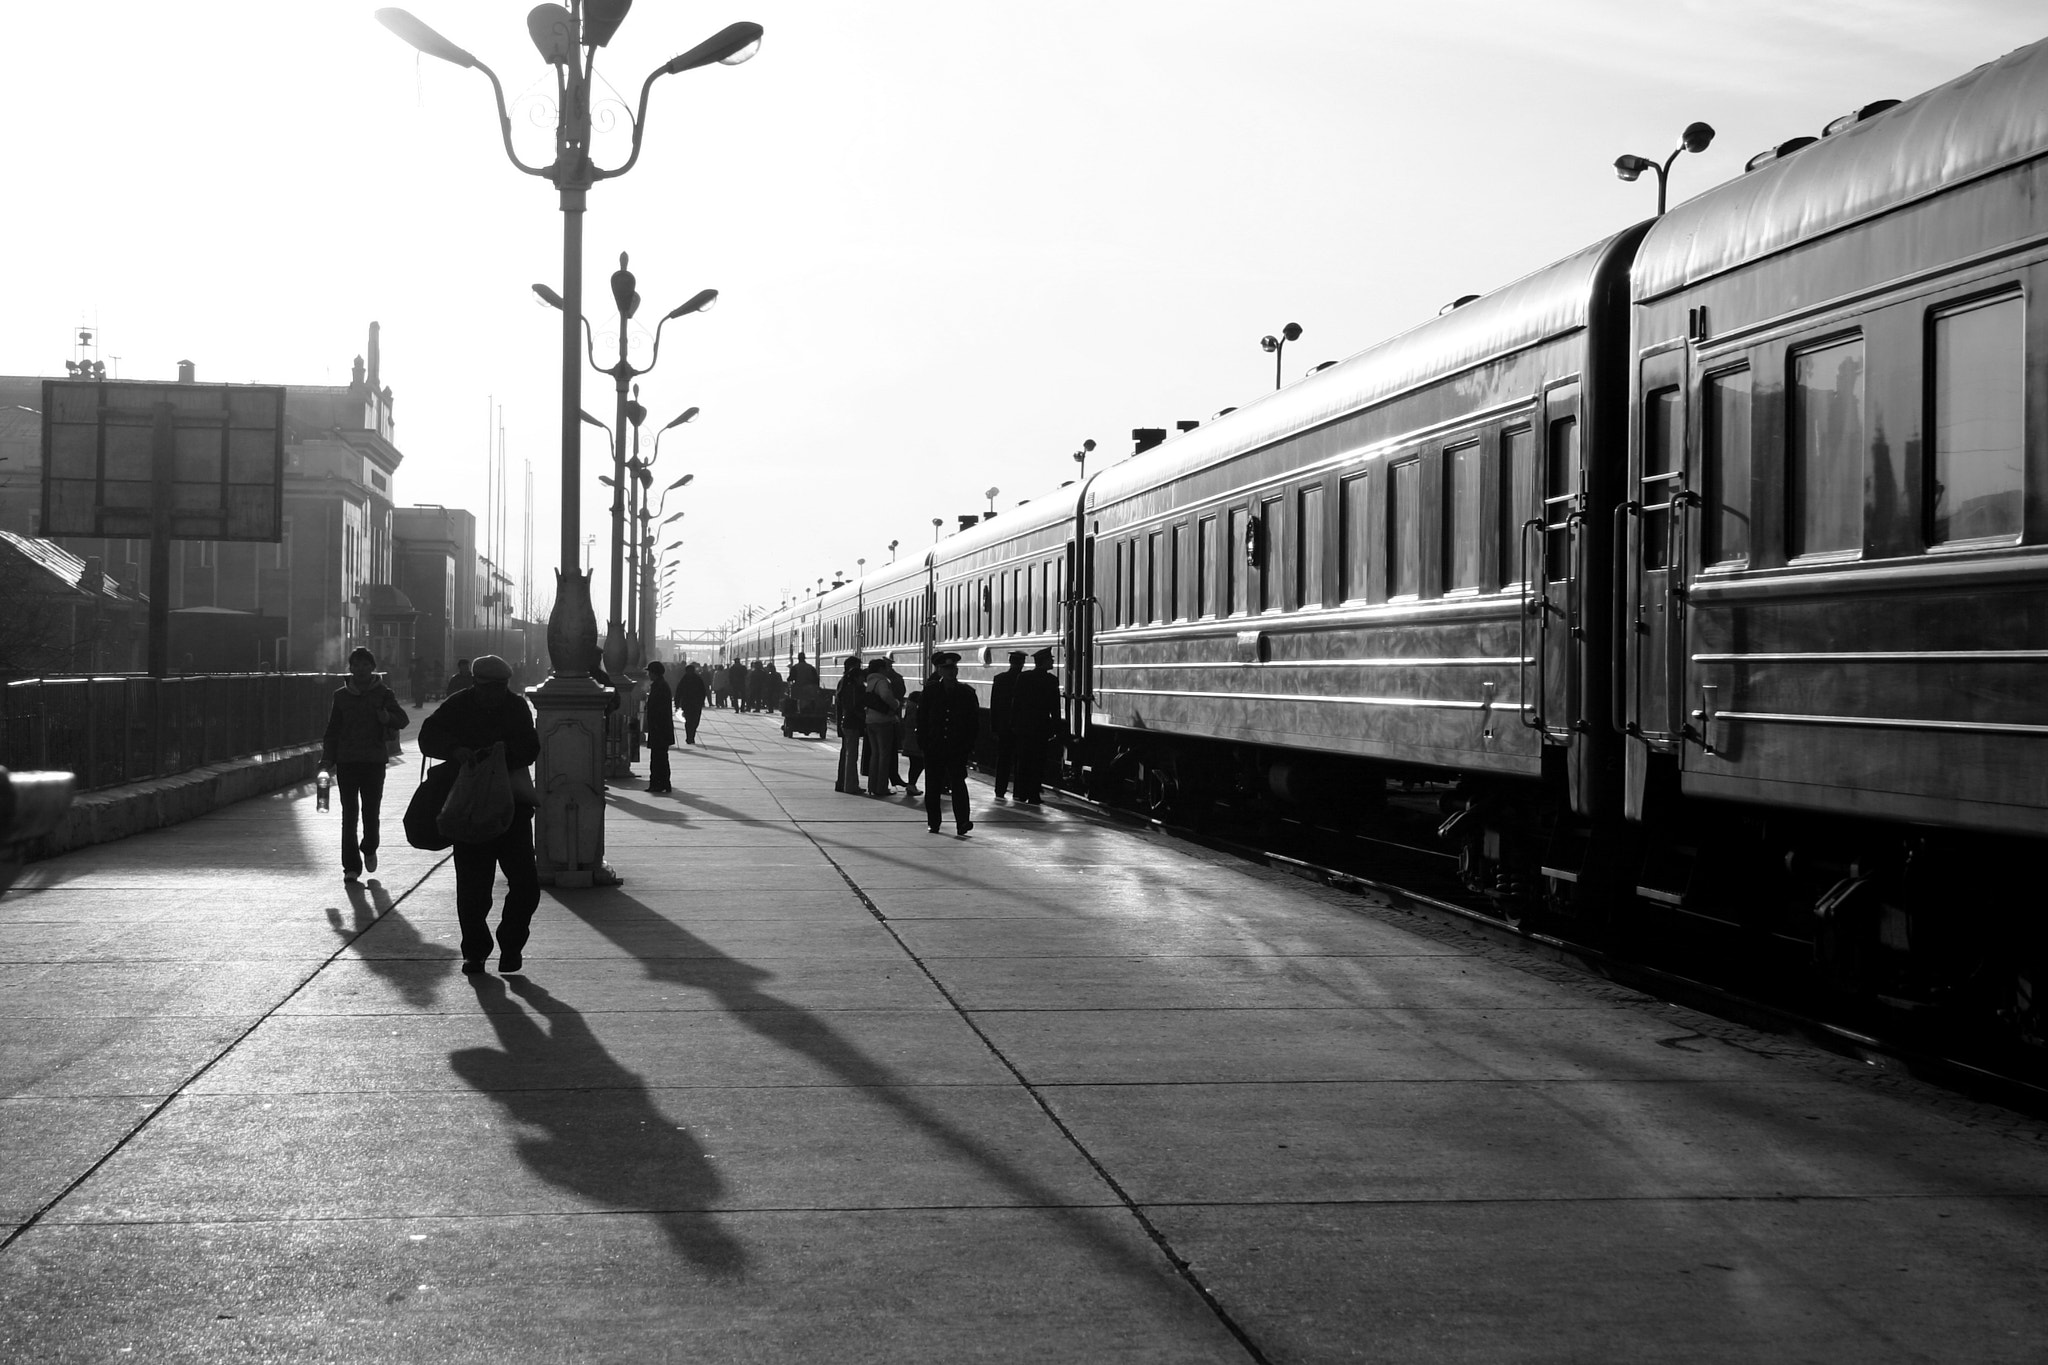 Photograph Ulaanbaatar Station by Phet Jitsuwan on 500px